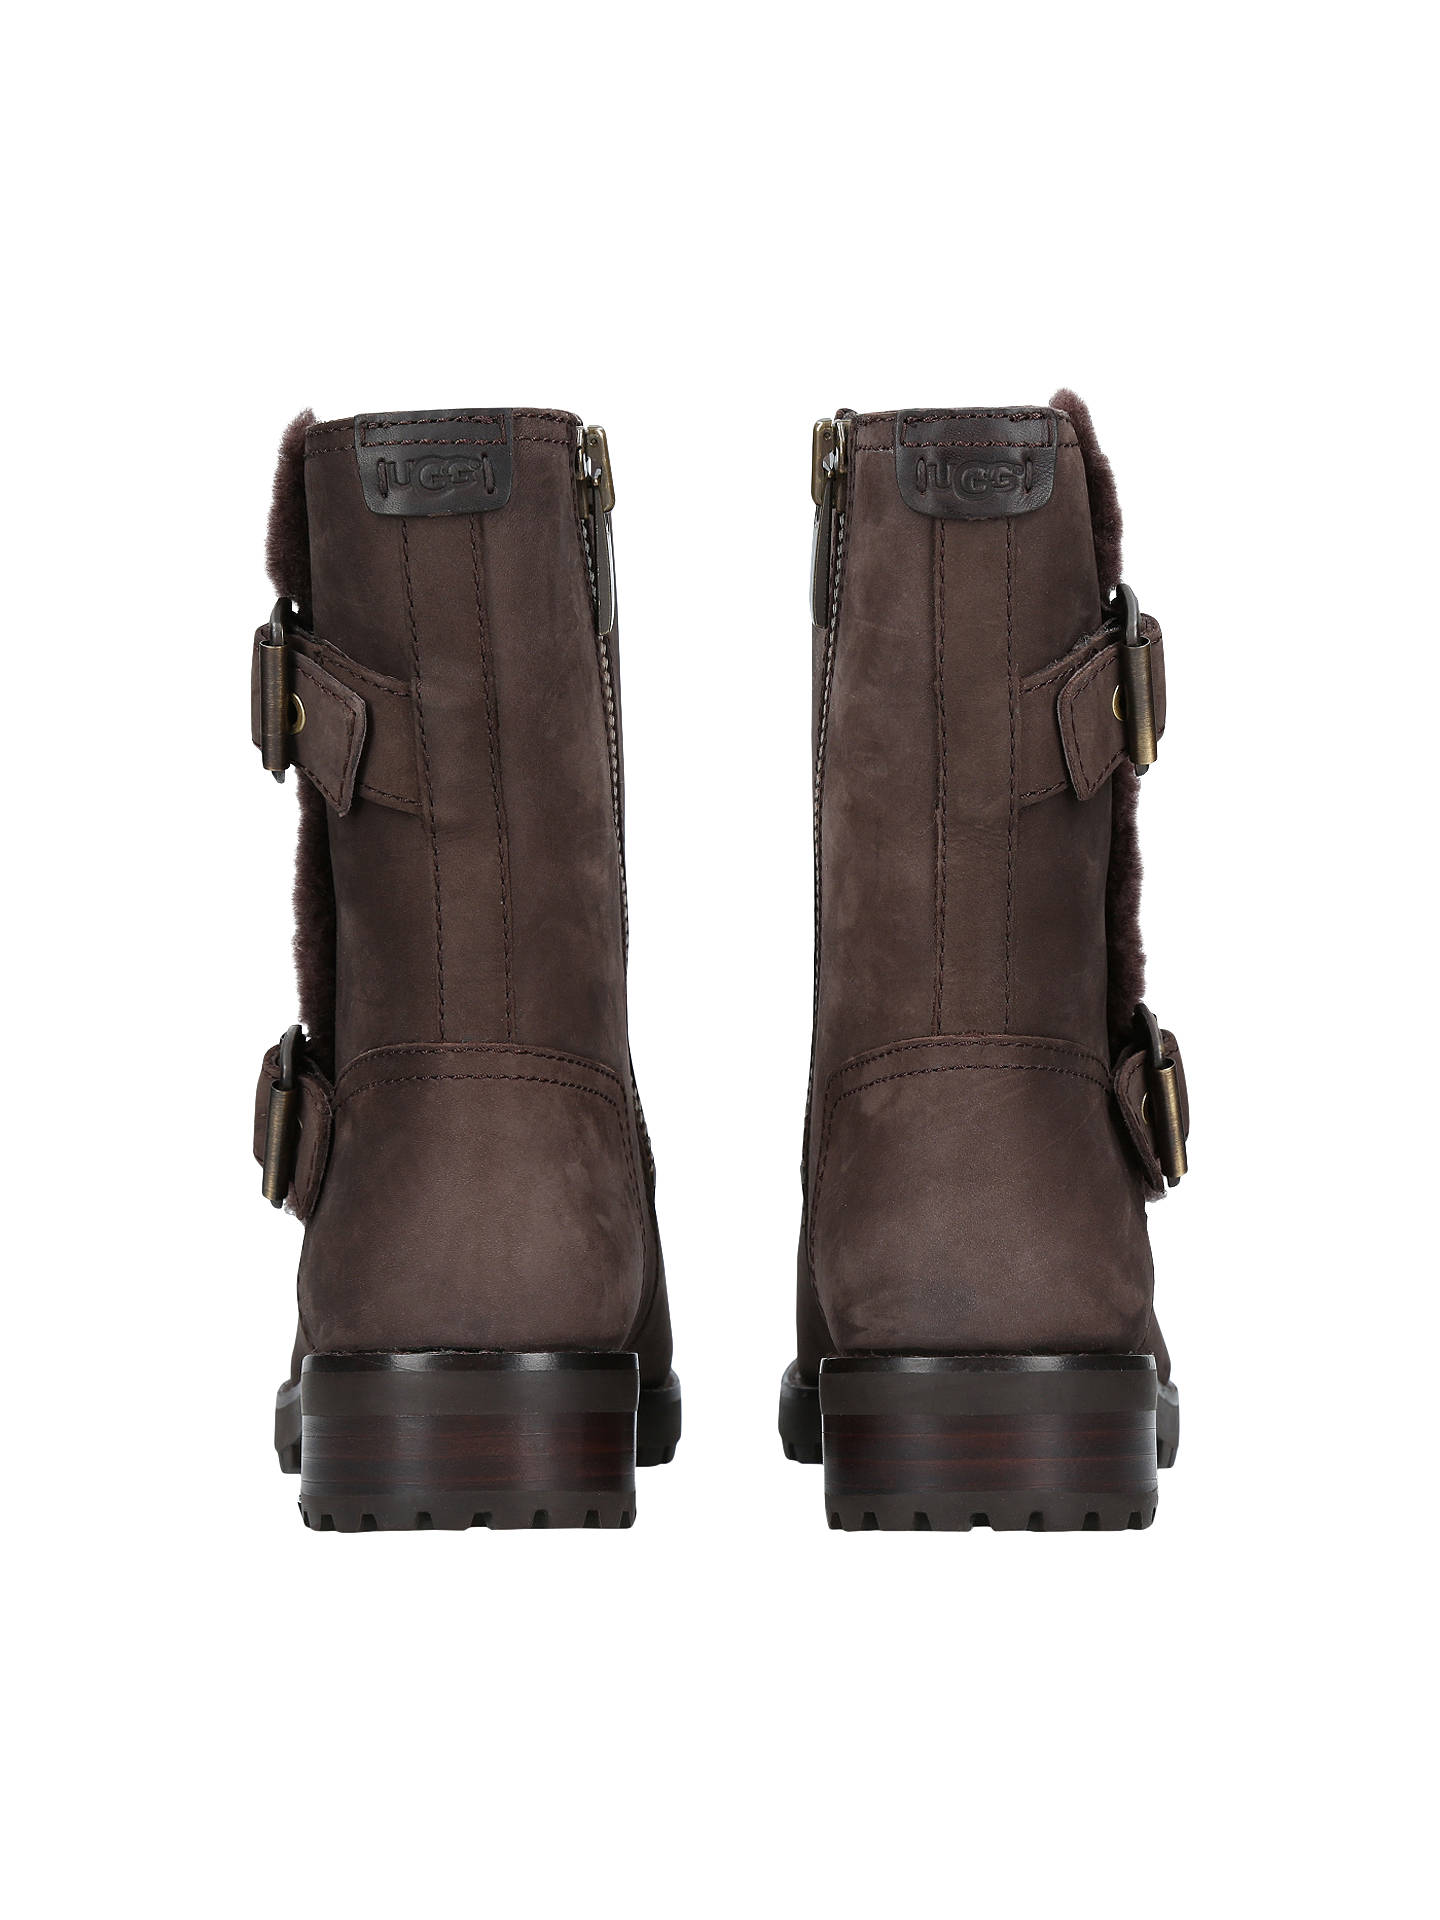 c2916398a81 UGG Niels Calf High Boots, Dark Brown Leather at John Lewis & Partners